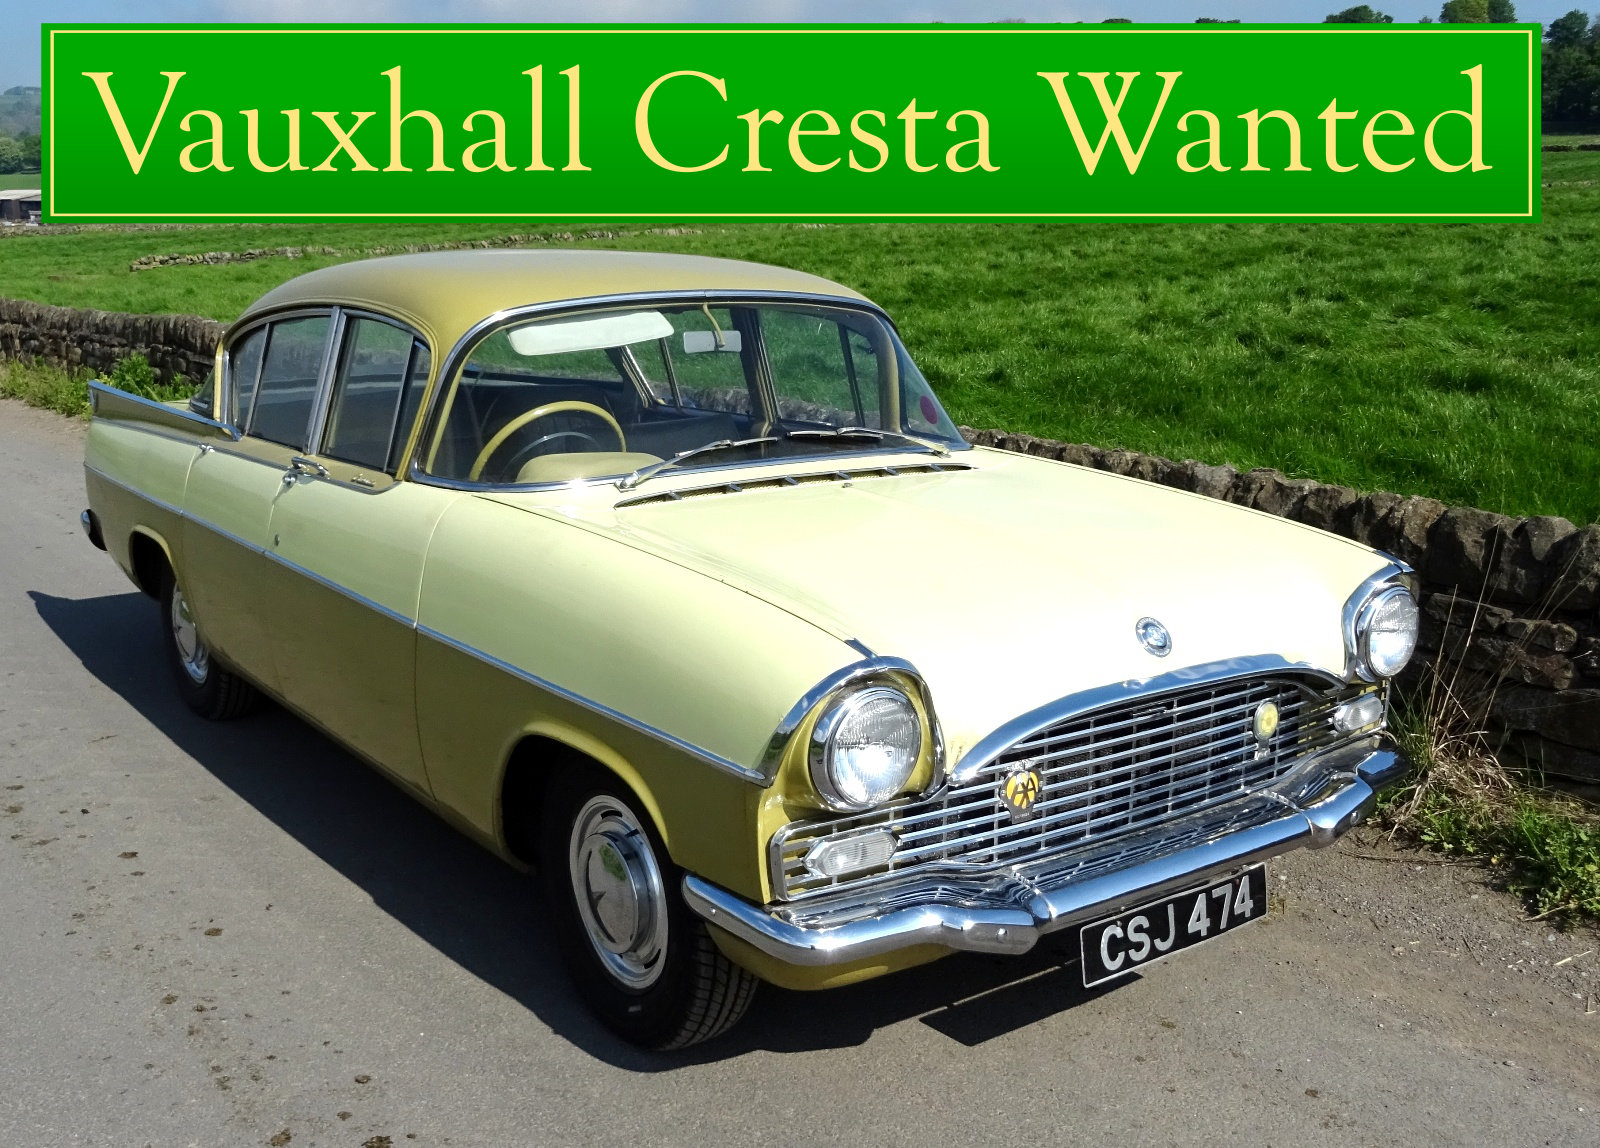 FORD ZODIAC MK3 WANTED, CLASSIC CARS WANTED, INSTANT PAYMENT Wanted (picture 5 of 6)